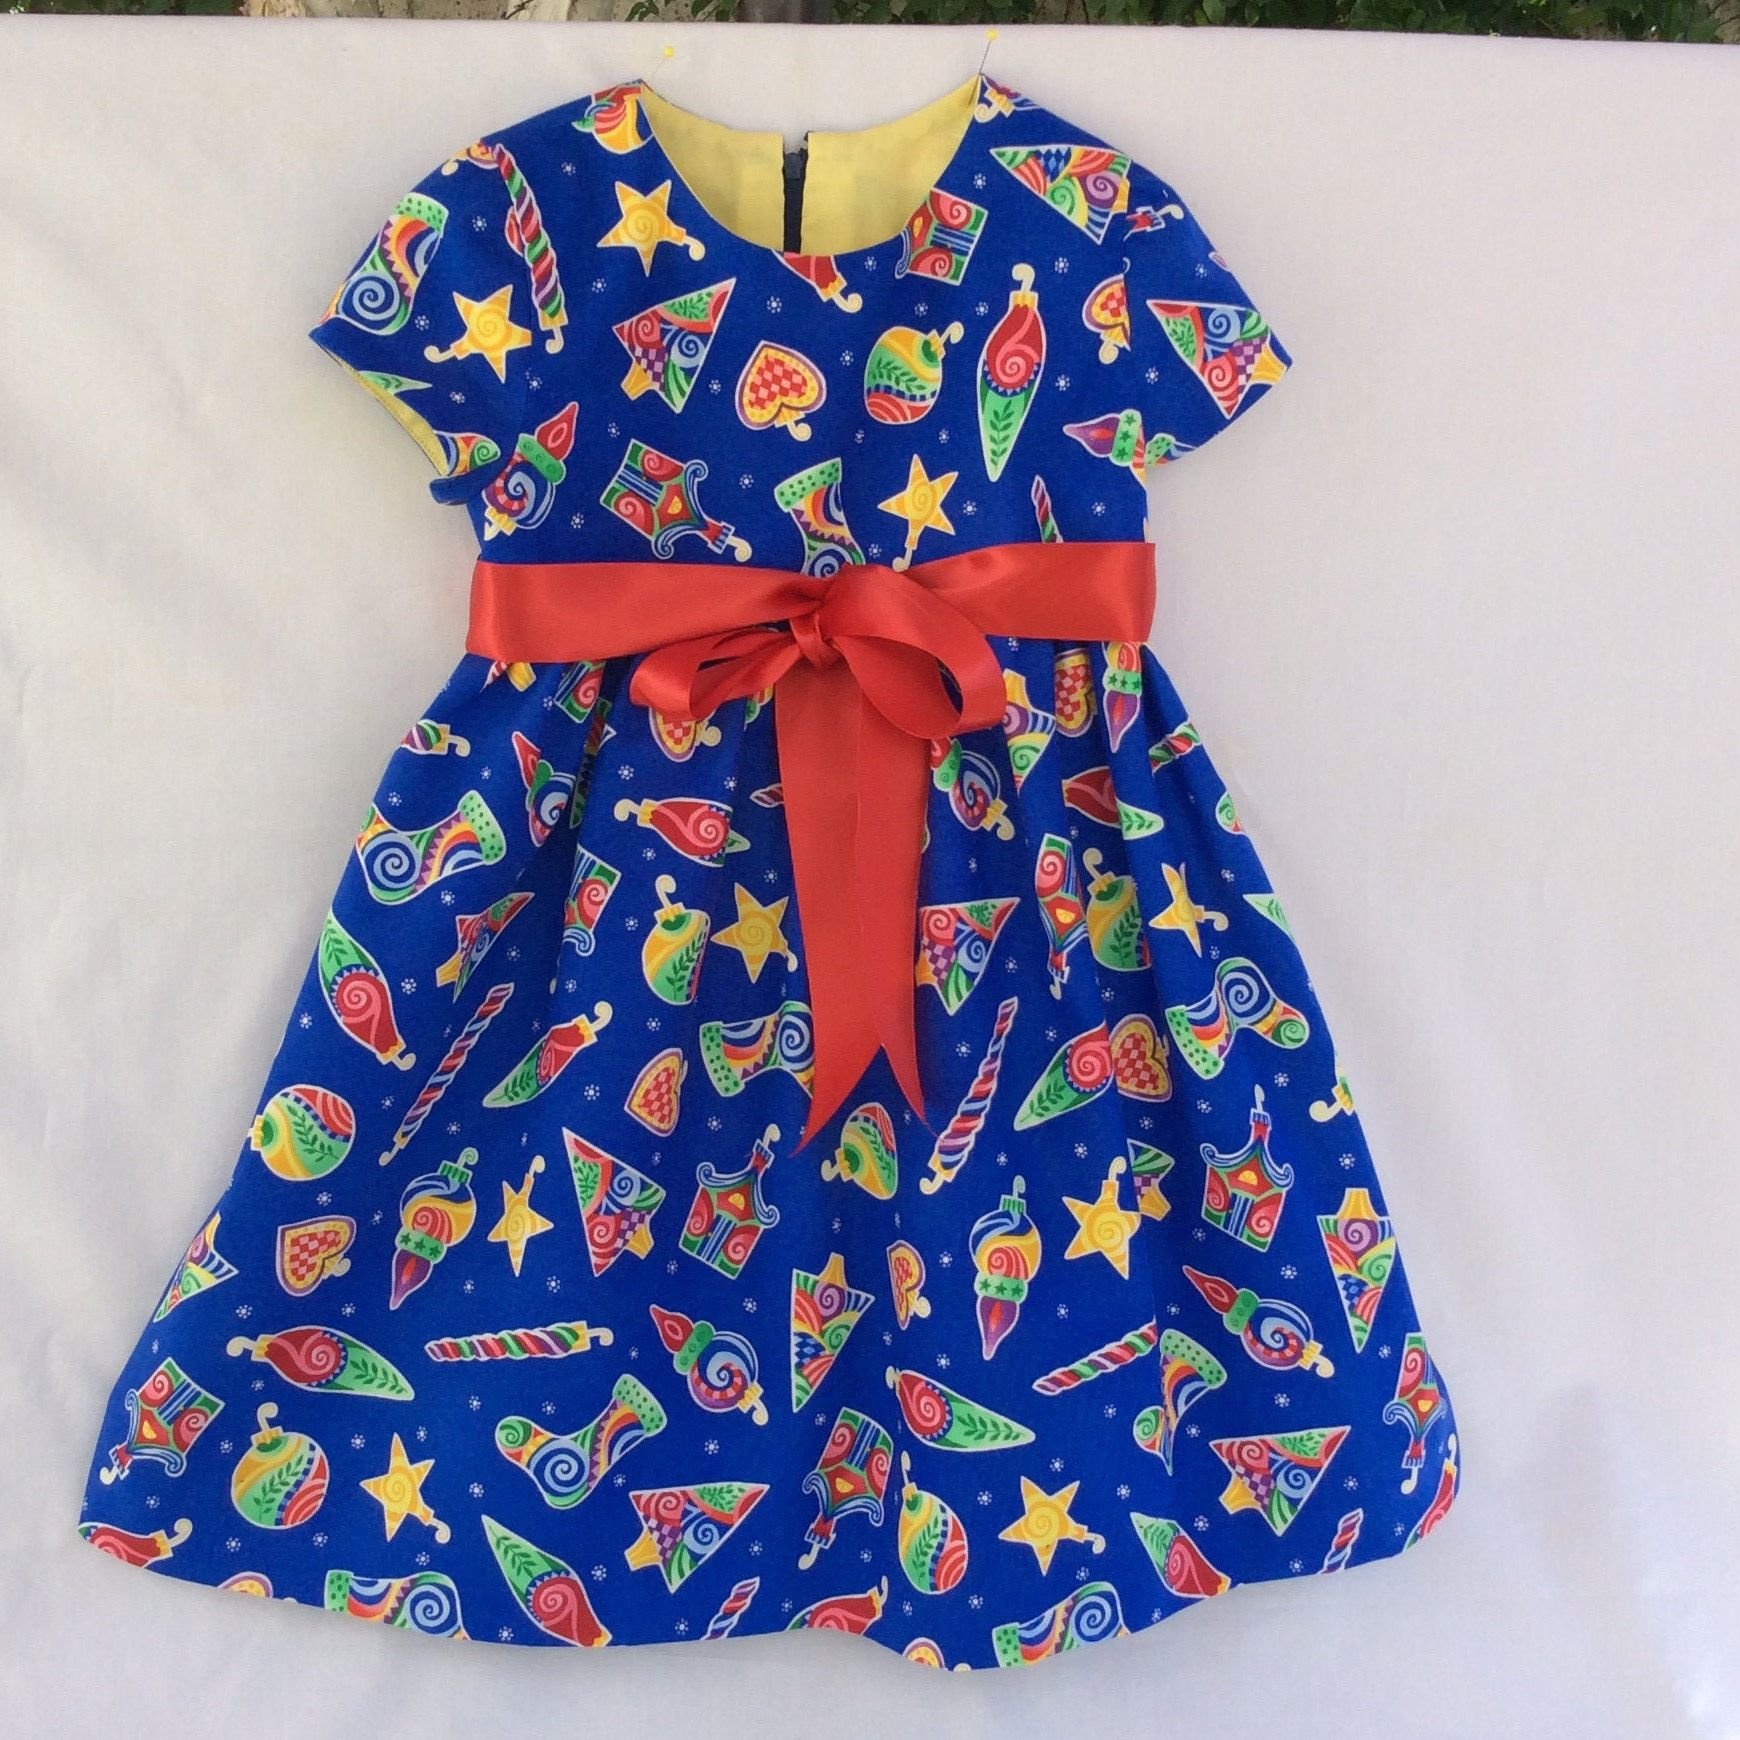 Girls Christmas Dress Blue Red Green Yellow Short Sleeves Lined Top Size 5t By The3nic Toddler Girl Party Dresses Girl Green Dress Toddler Party Dress [ 1740 x 1740 Pixel ]